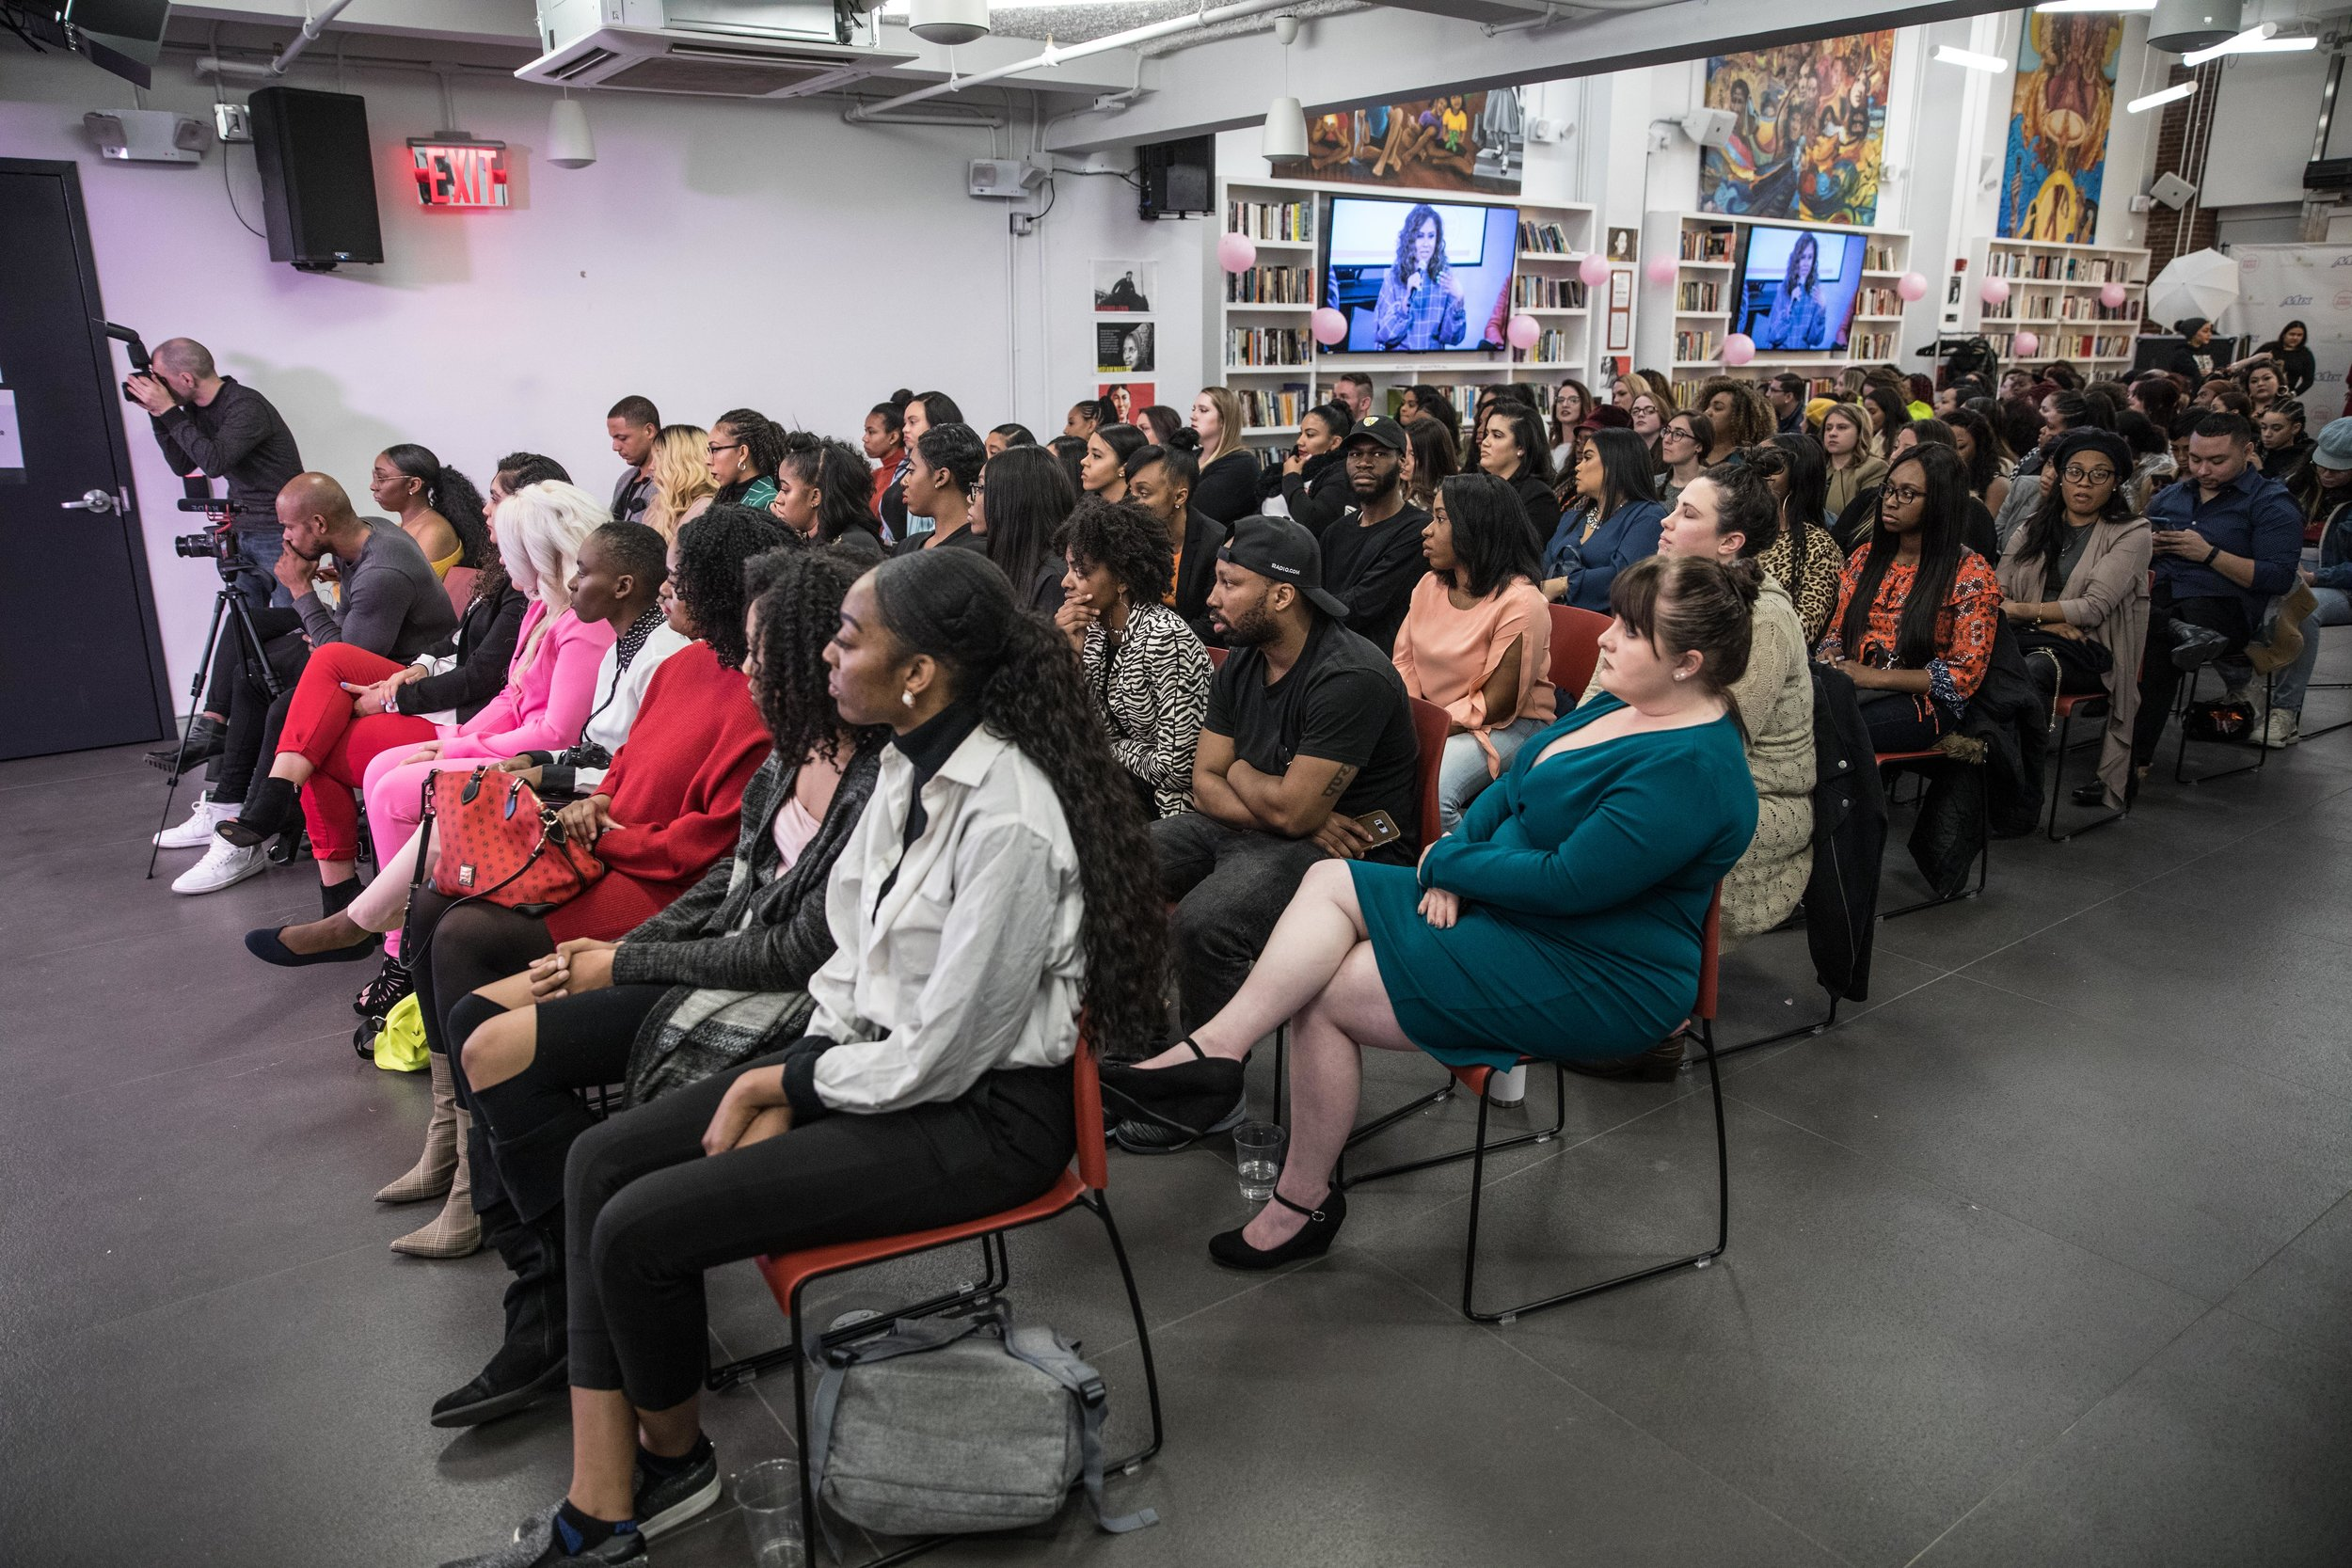 Events - As Women In Radio grows, we want to add more events in different parts of the country. Stay updated on our Masterclass schedule, Dinner In The City series, and our annual Cocktails, Cupcakes, and Conversations!You can also send in any events you have in your city that you would like us to support.